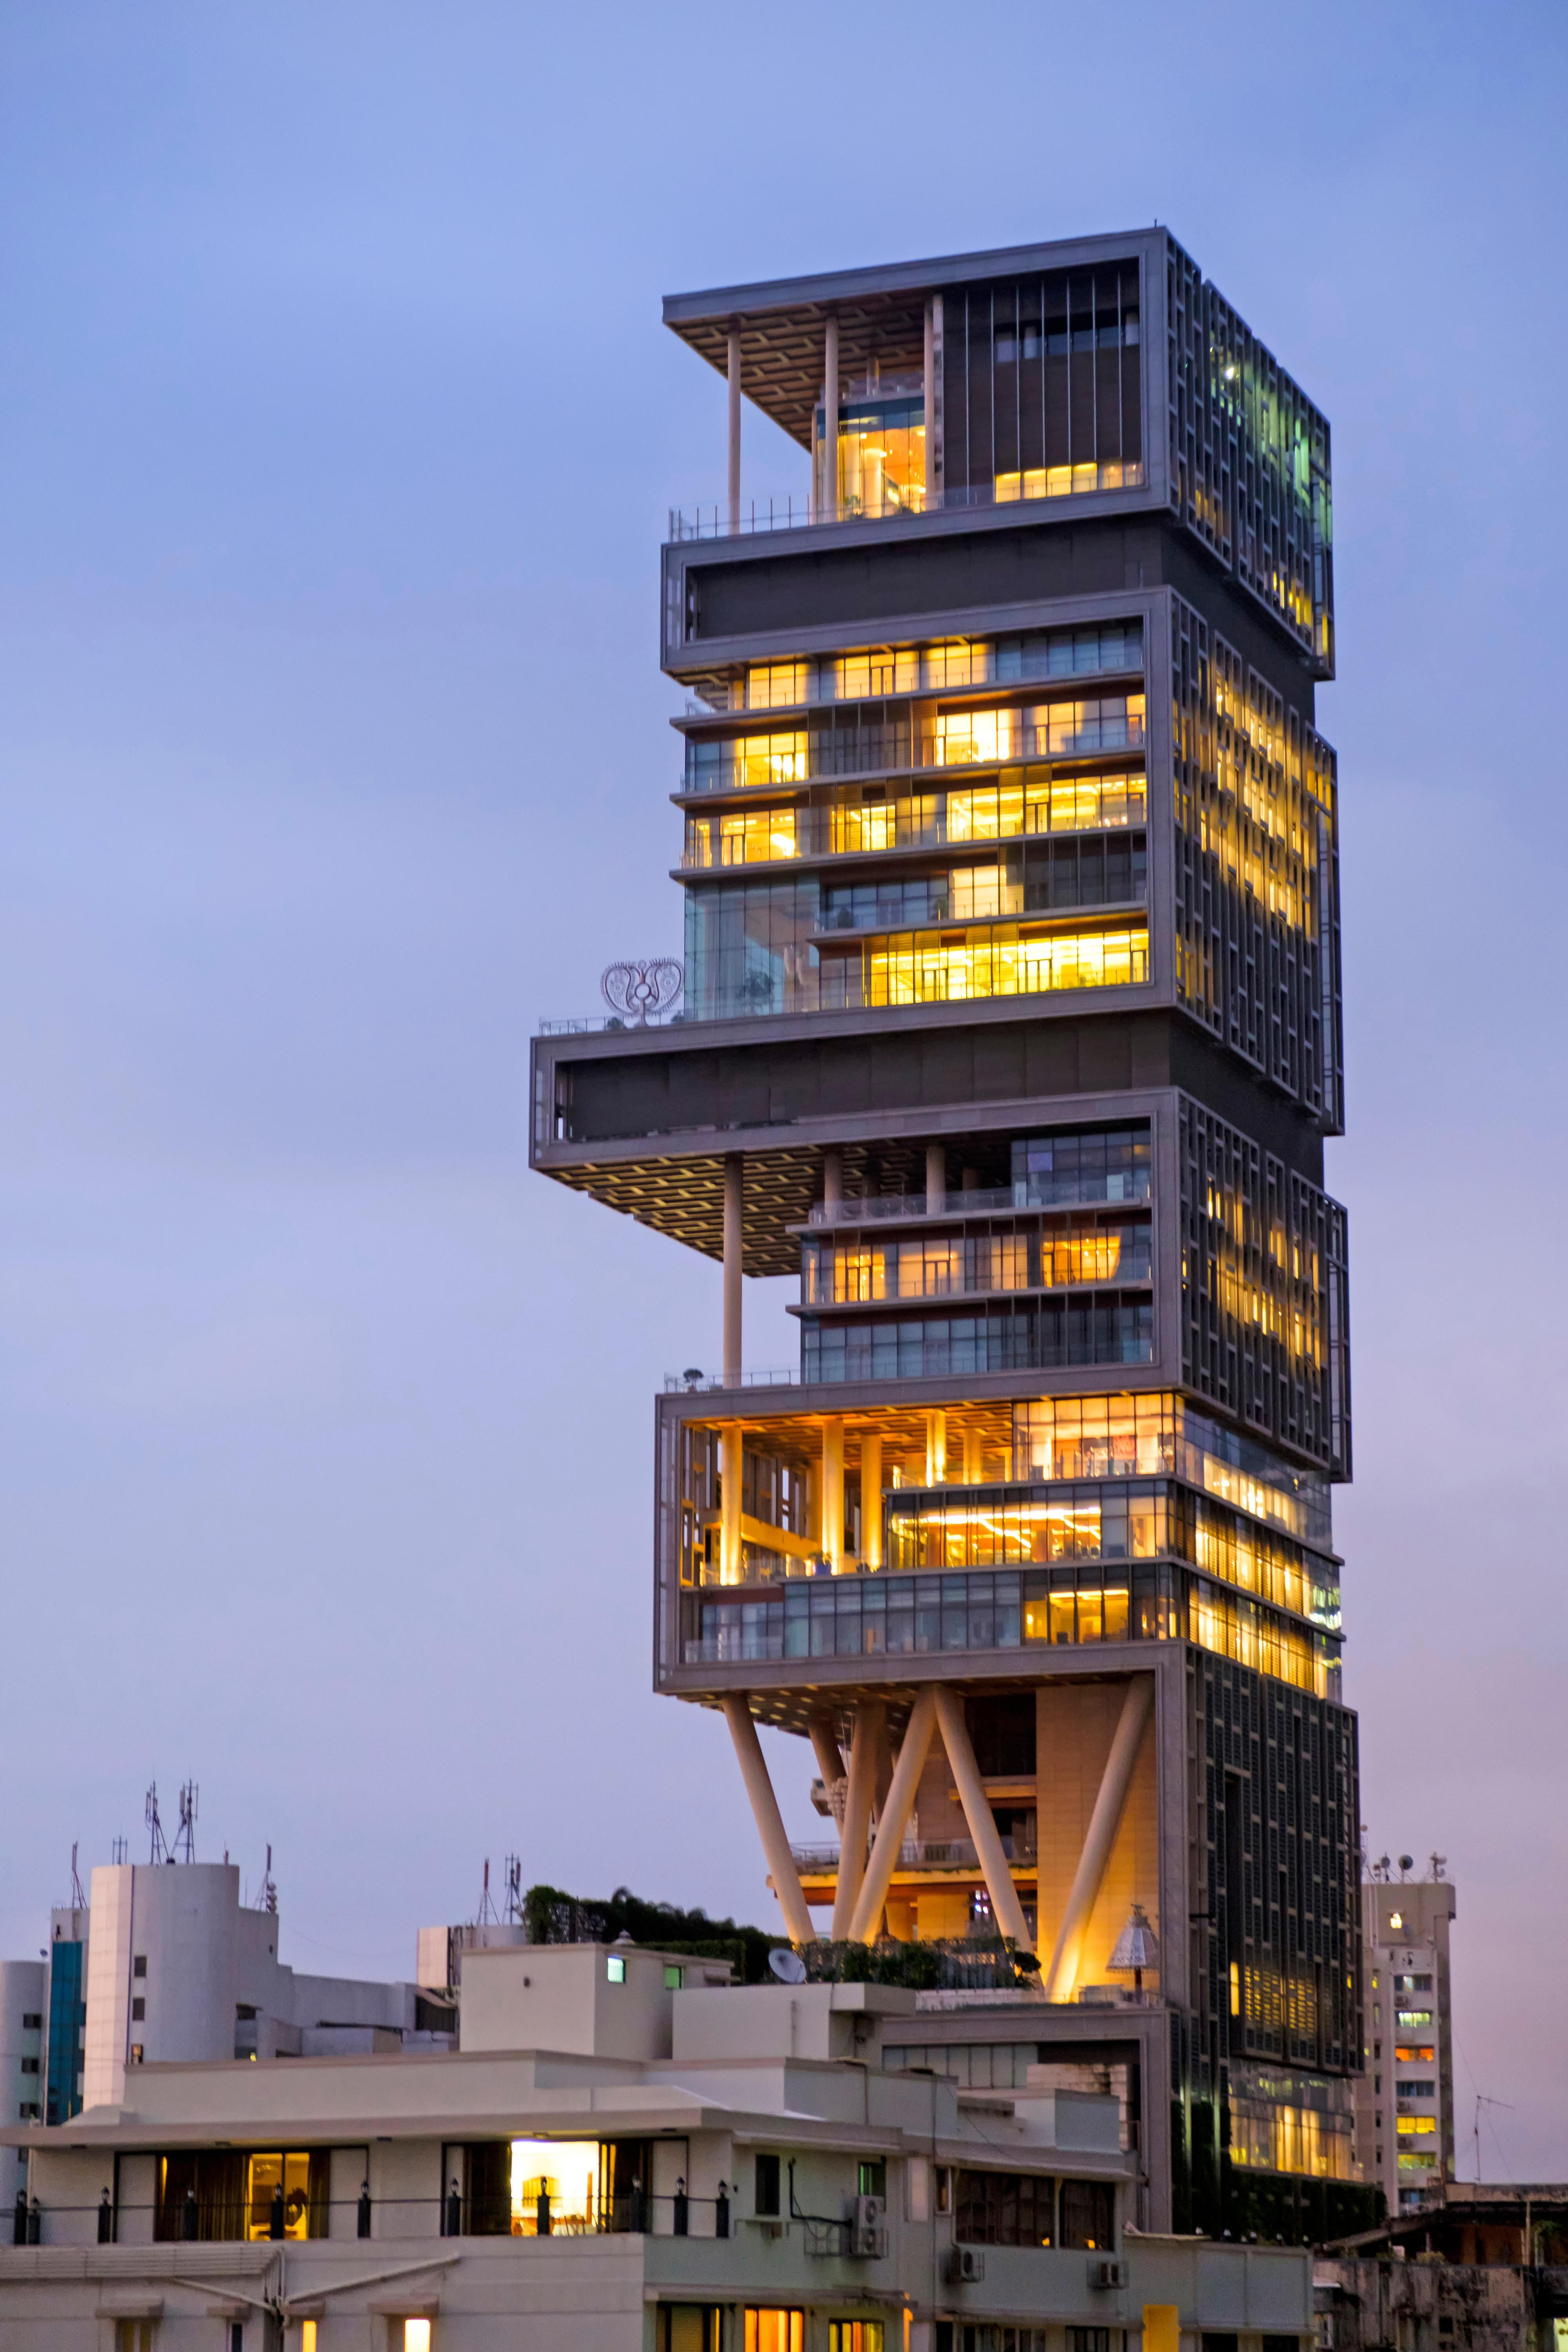 World Biggest House Image New Inside £1bn World S Most Expensive and Biggest Home with